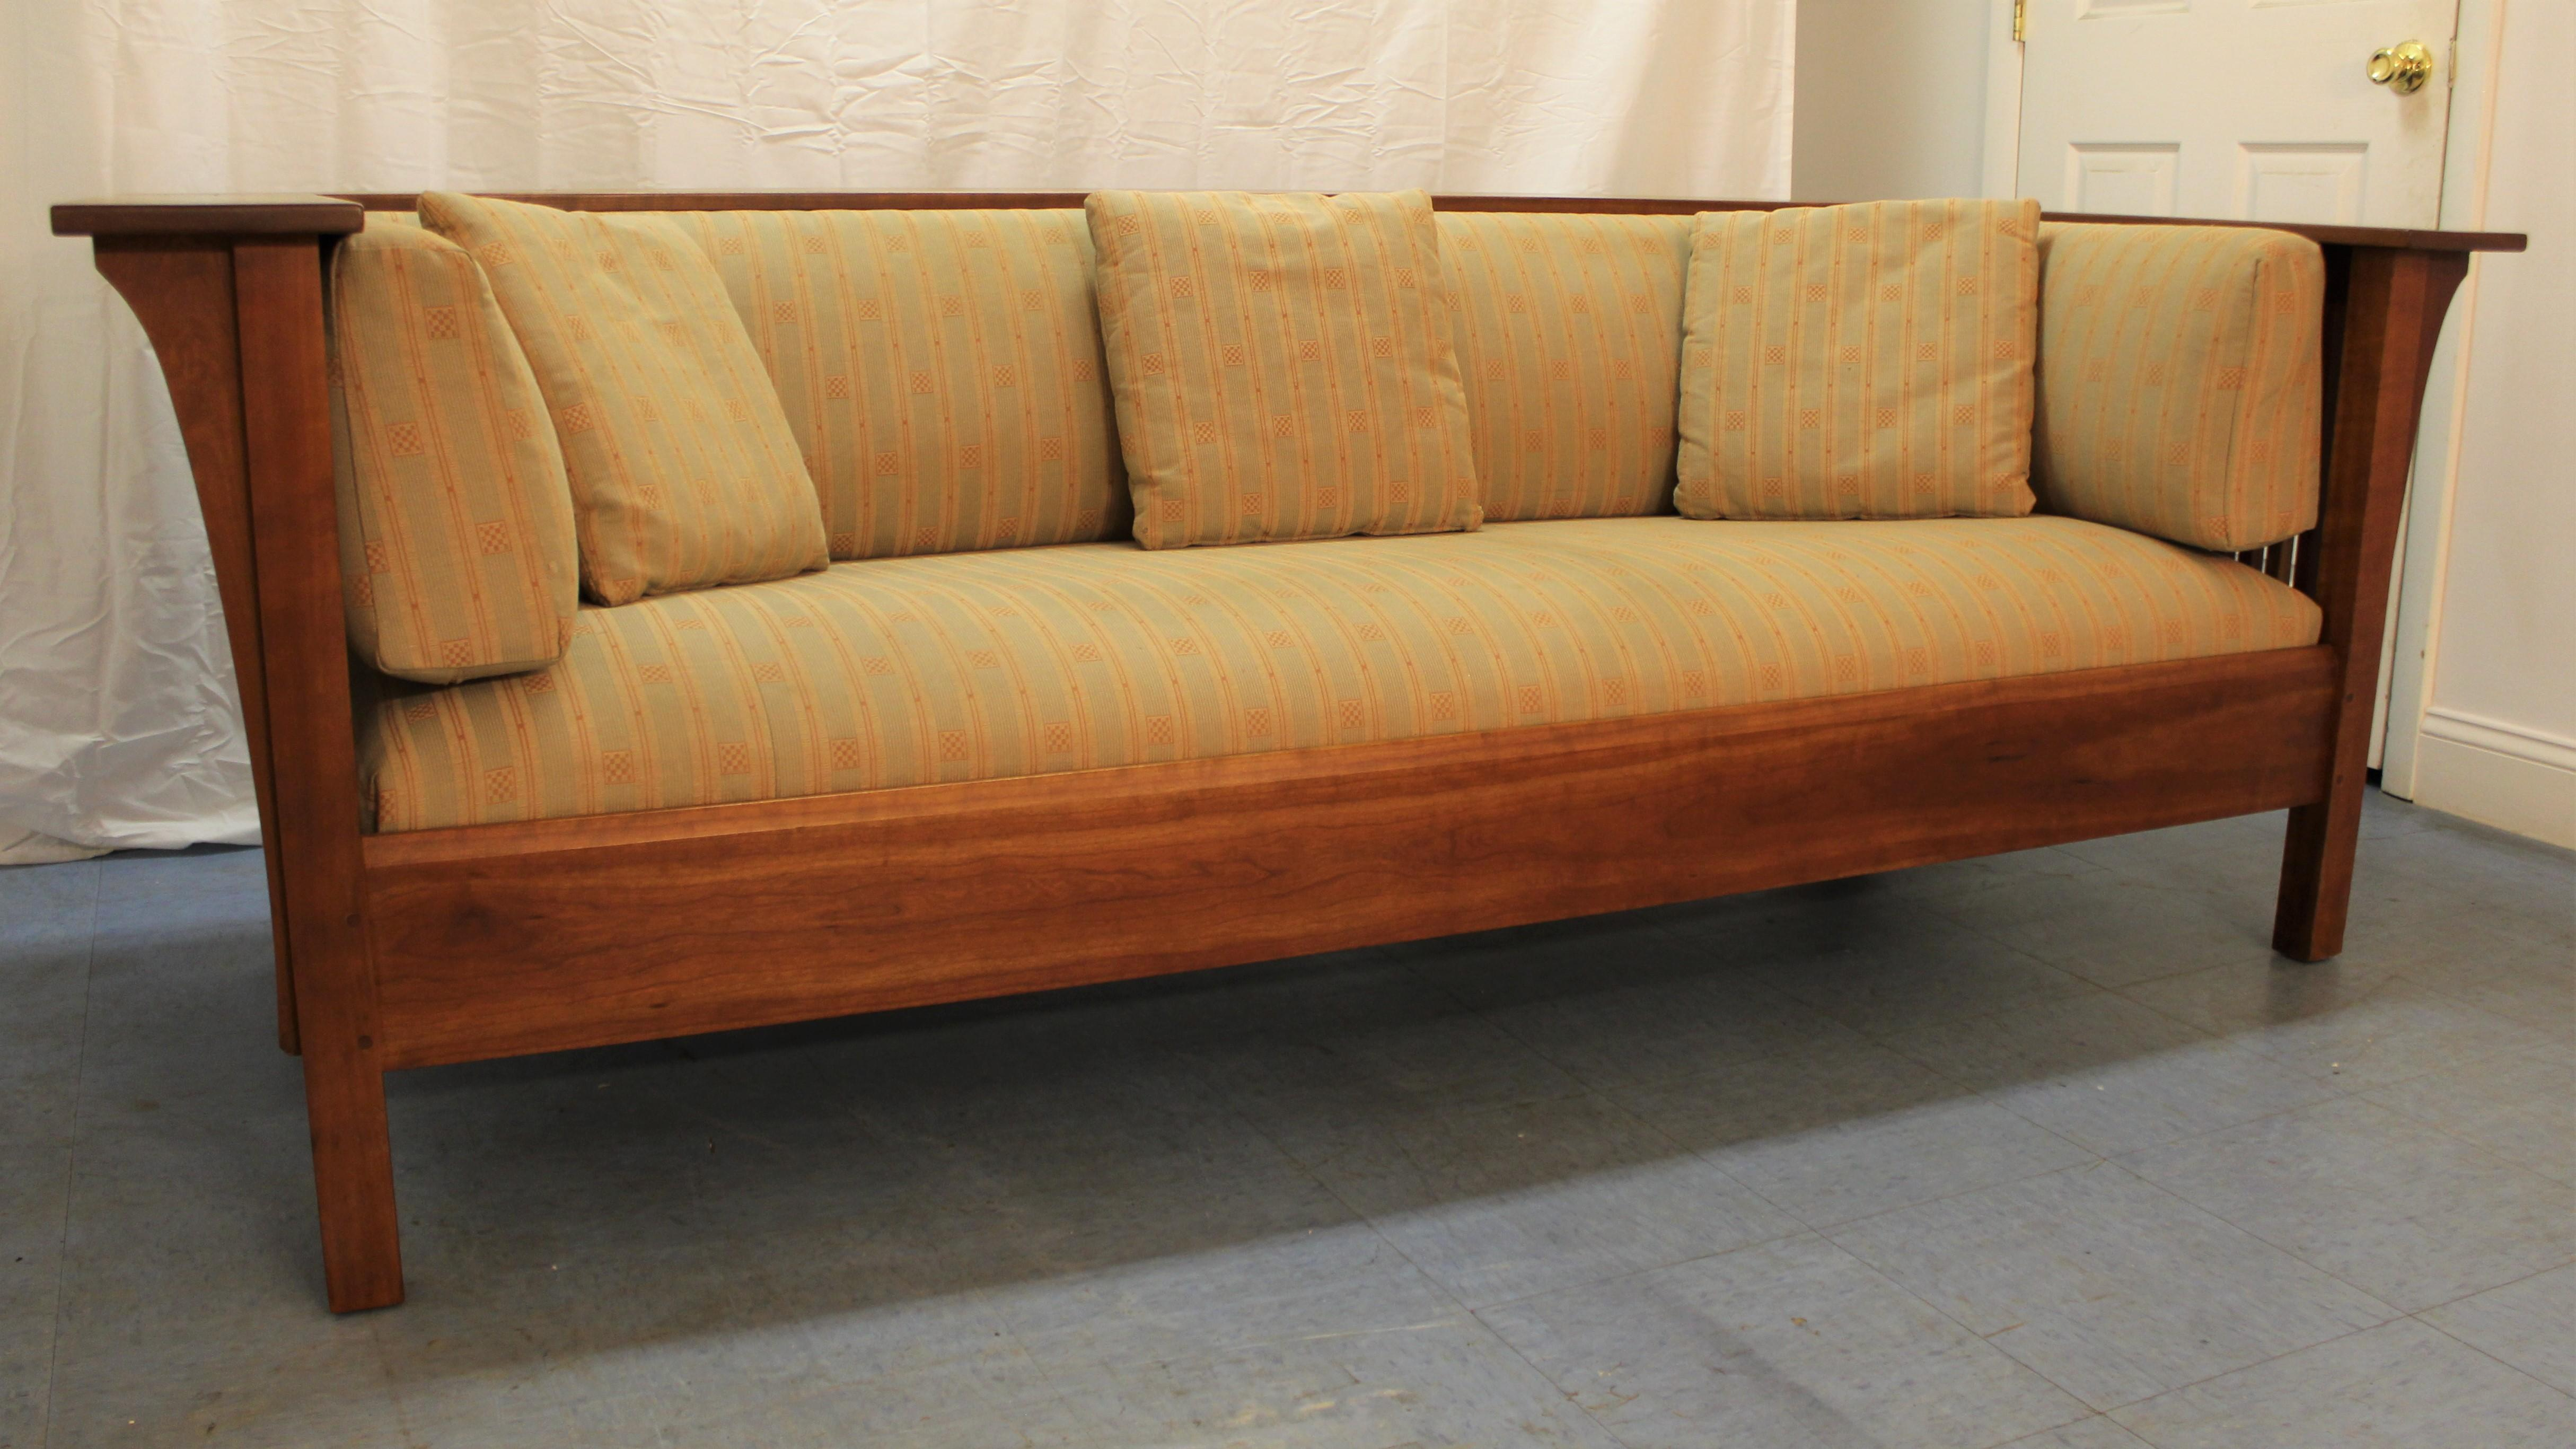 stickley sleeper sofa sofas natuzzi compra online arts and crafts style mission ...